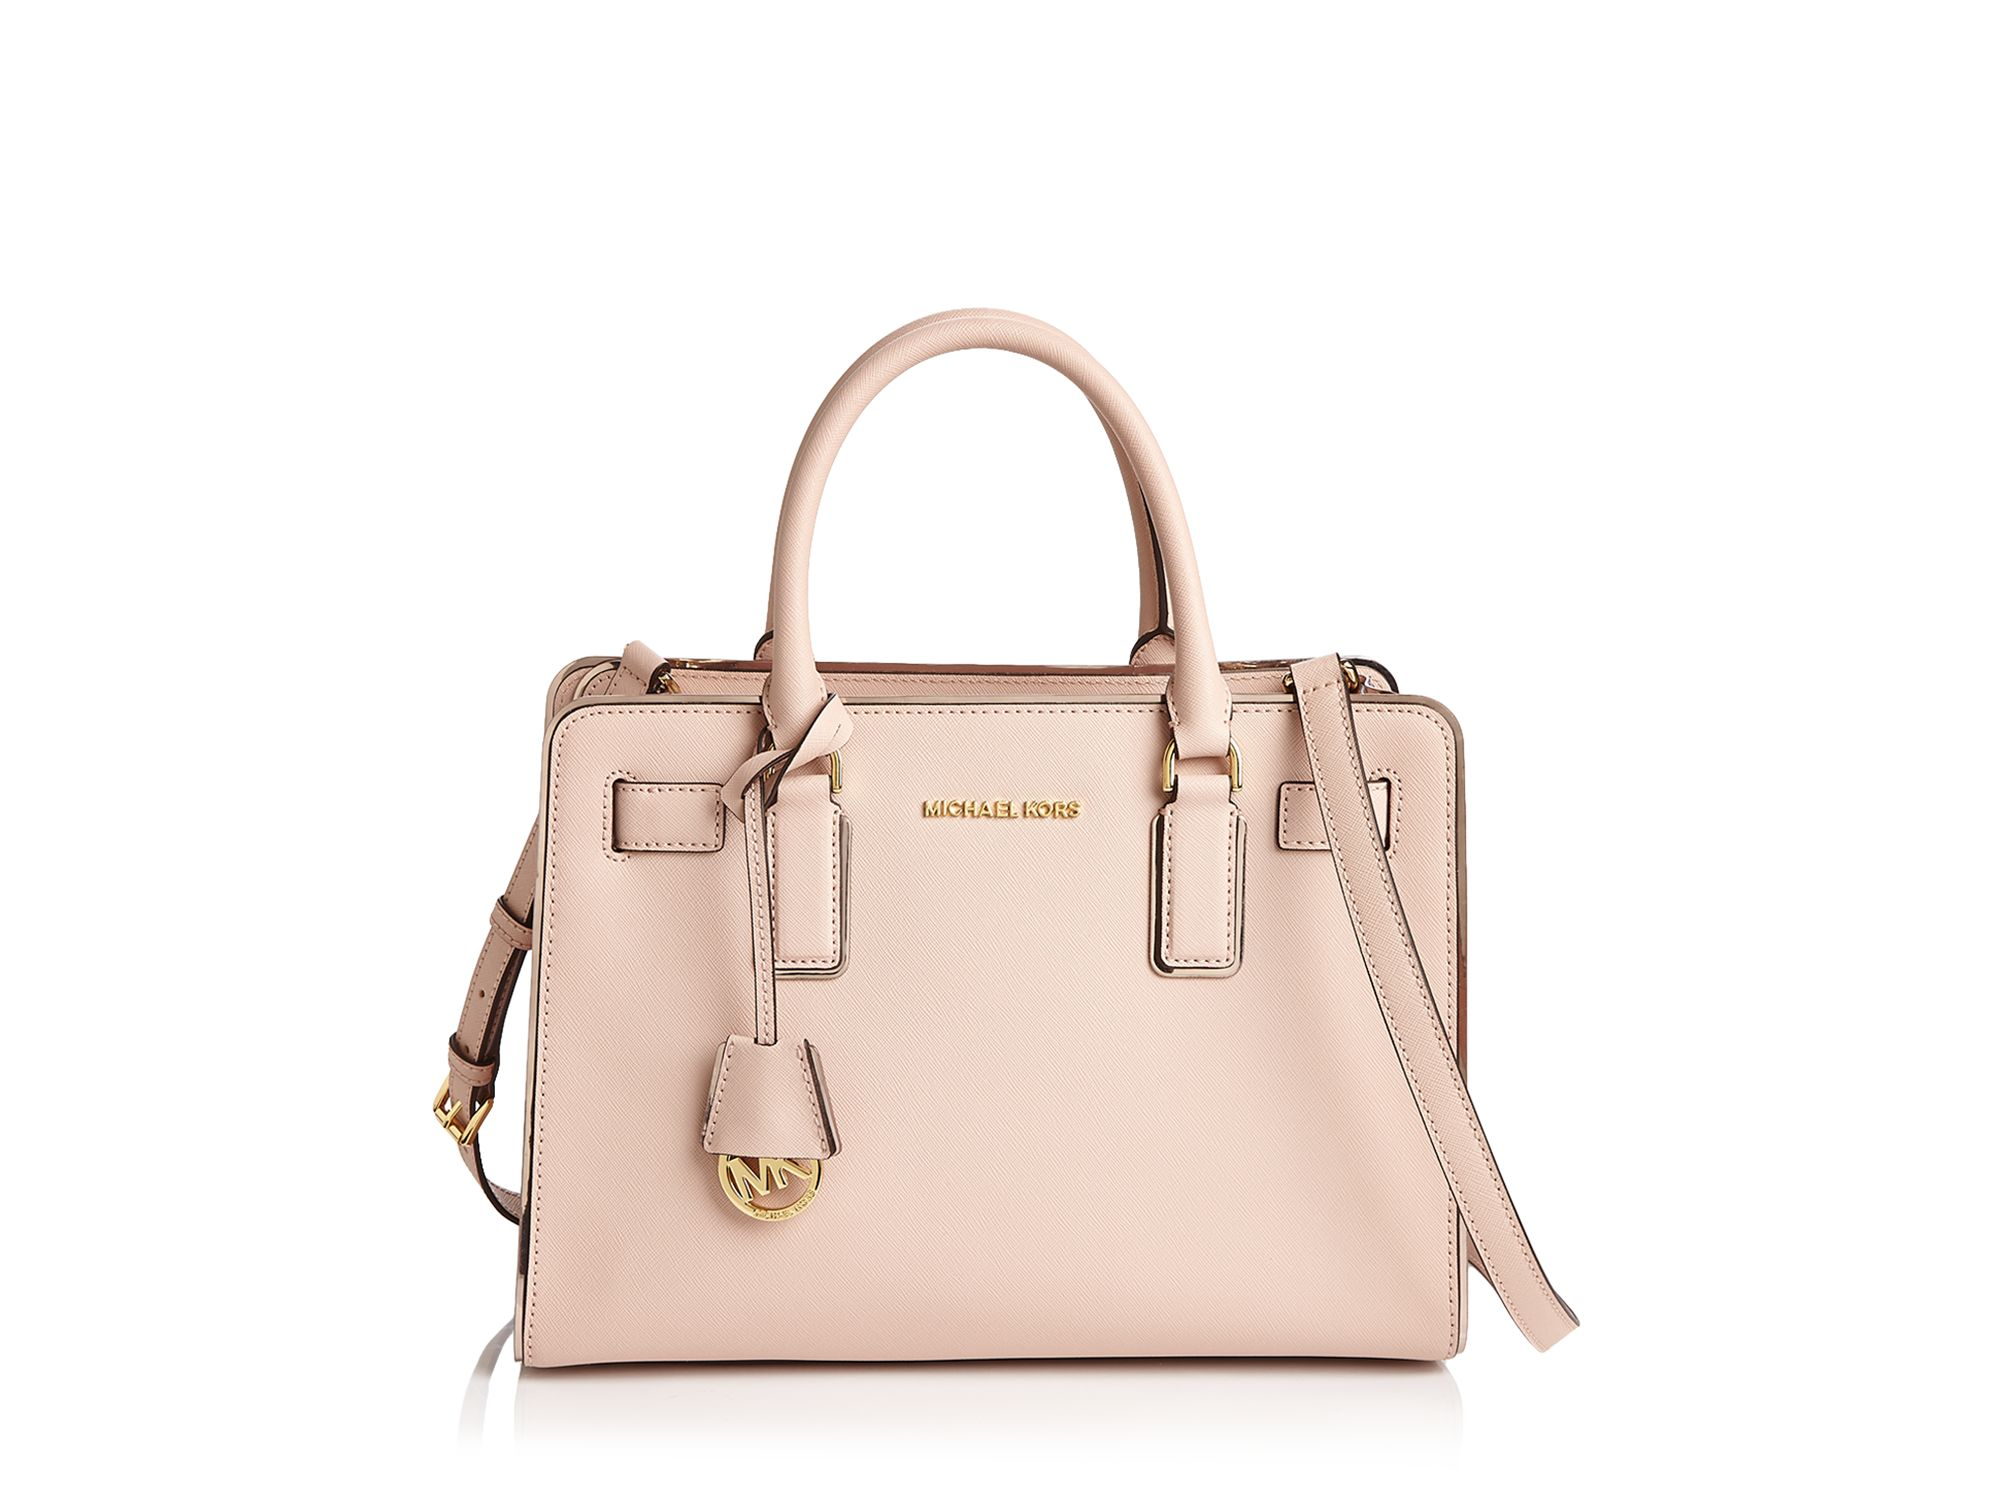 michael michael kors dillon saffiano leather satchel in pink lyst. Black Bedroom Furniture Sets. Home Design Ideas